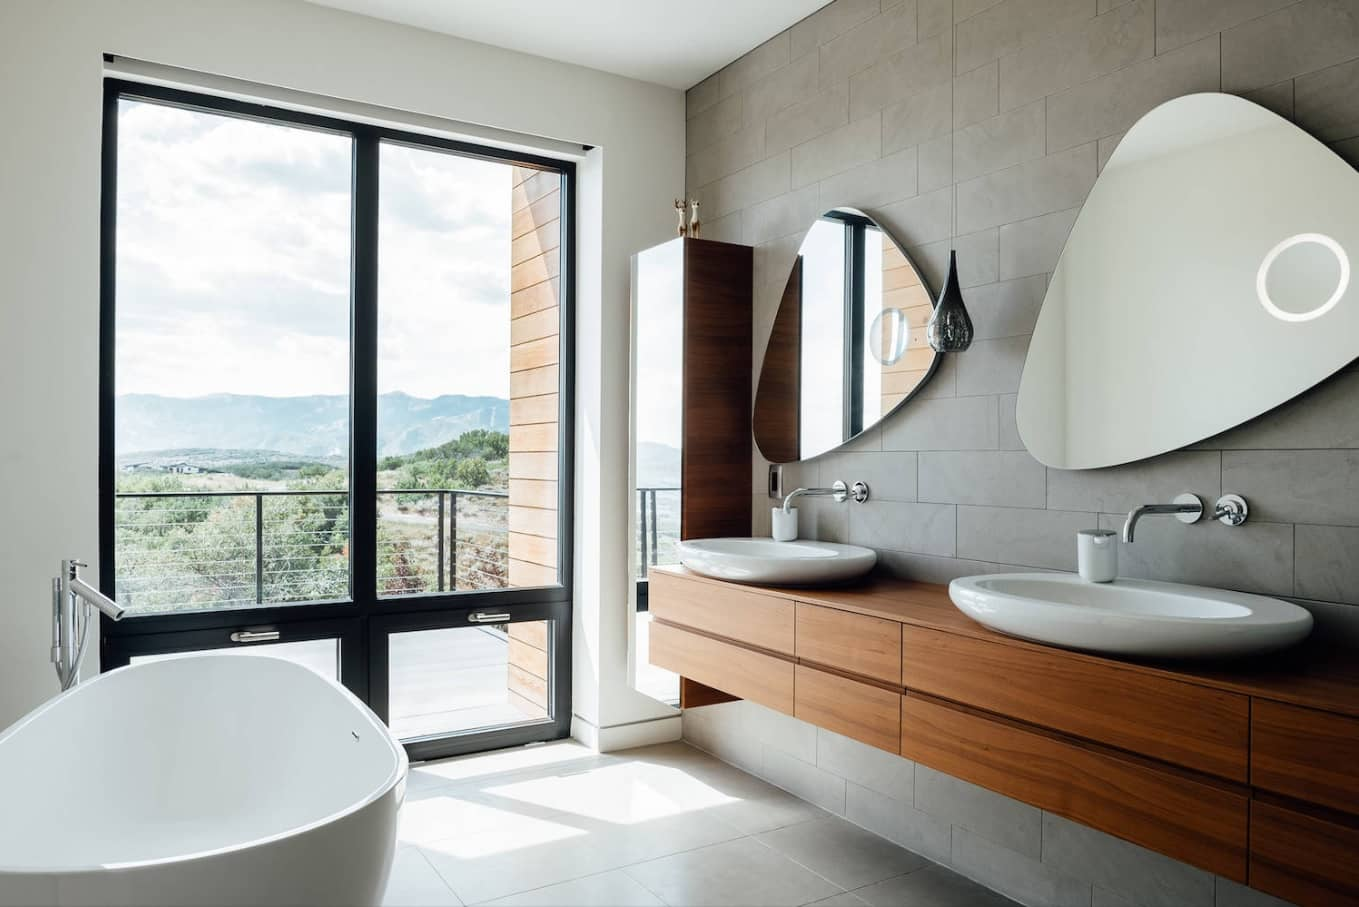 New Homeowner? Top 3 Places You Should Focus Your Design Efforts. Modern gray tiled large bathroom with hovering vanities